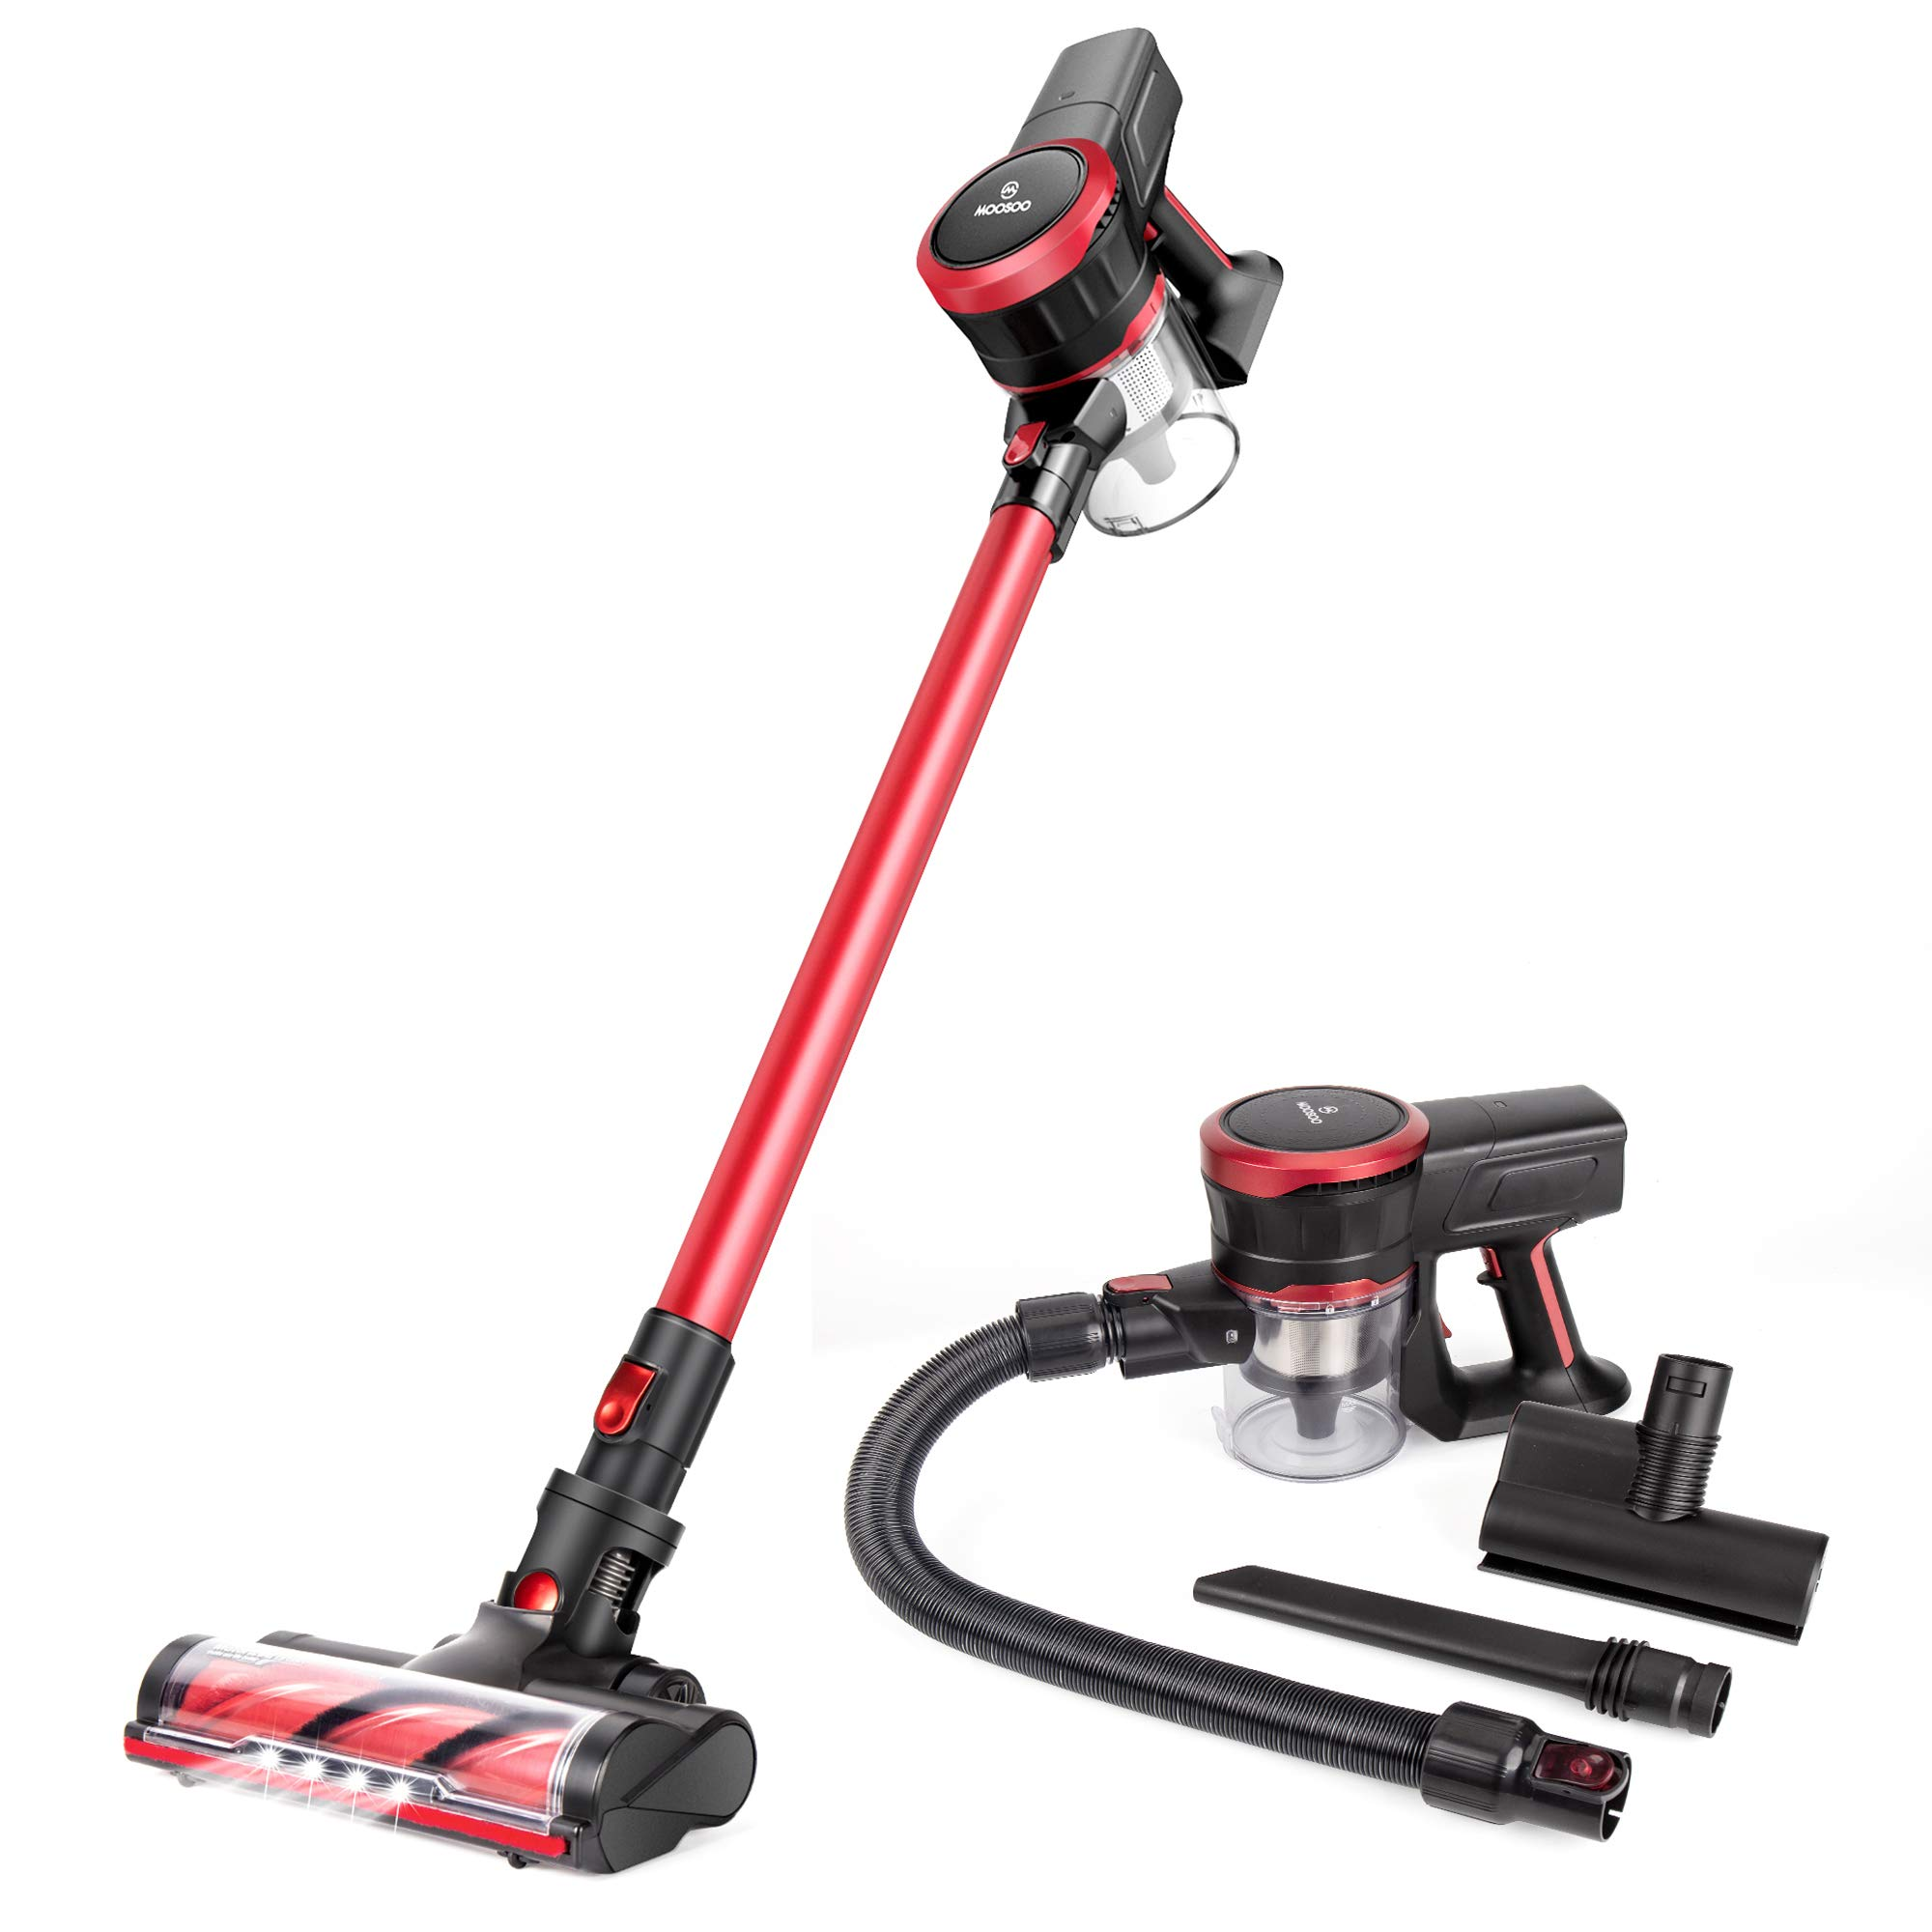 MOOSOO Cordless Ultra Quiet Brushless Multi attachments